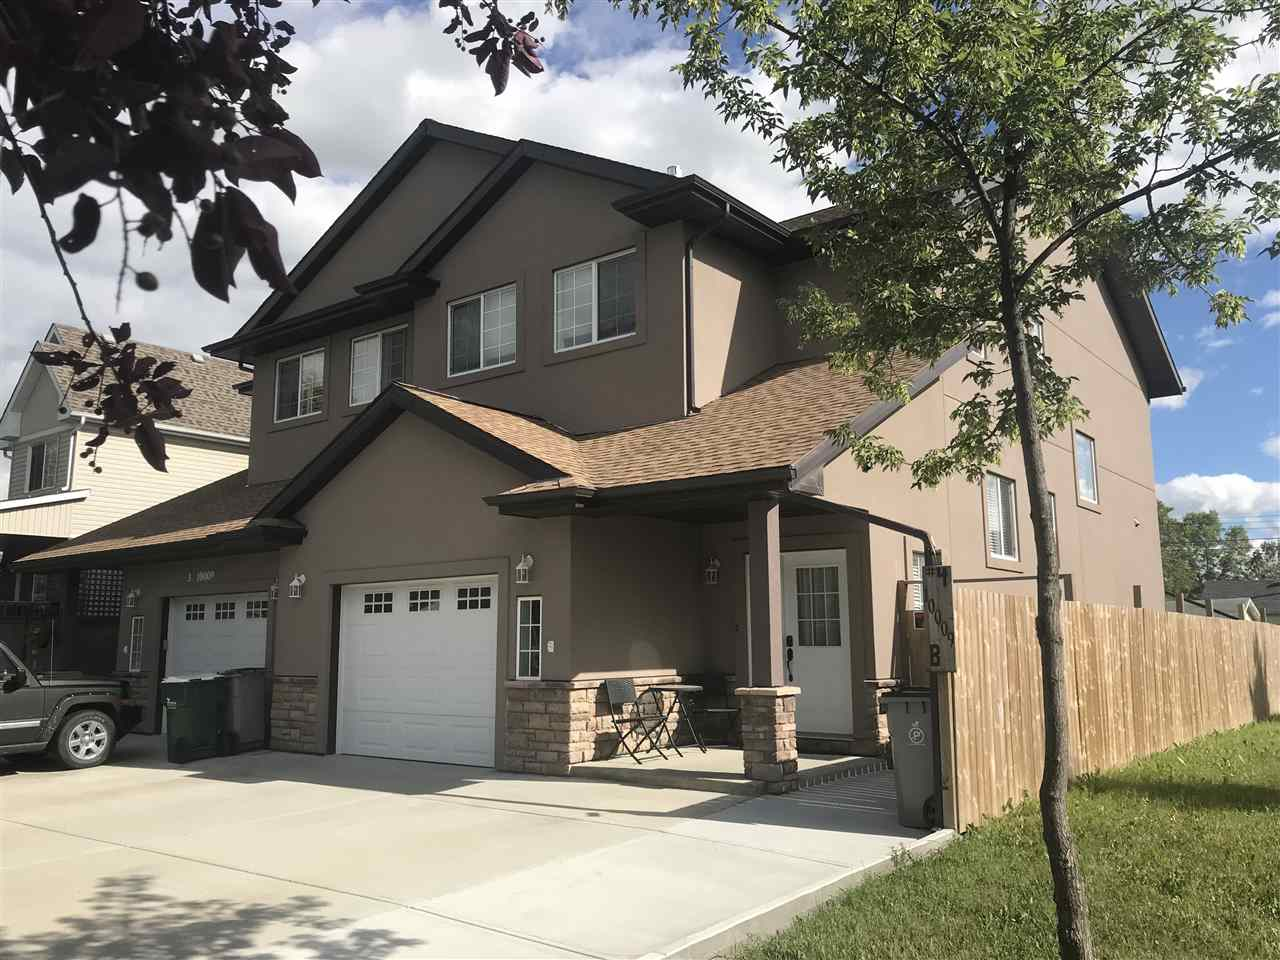 Main Photo: 4 10009B 98 Avenue: Morinville House Half Duplex for sale : MLS®# E4101987